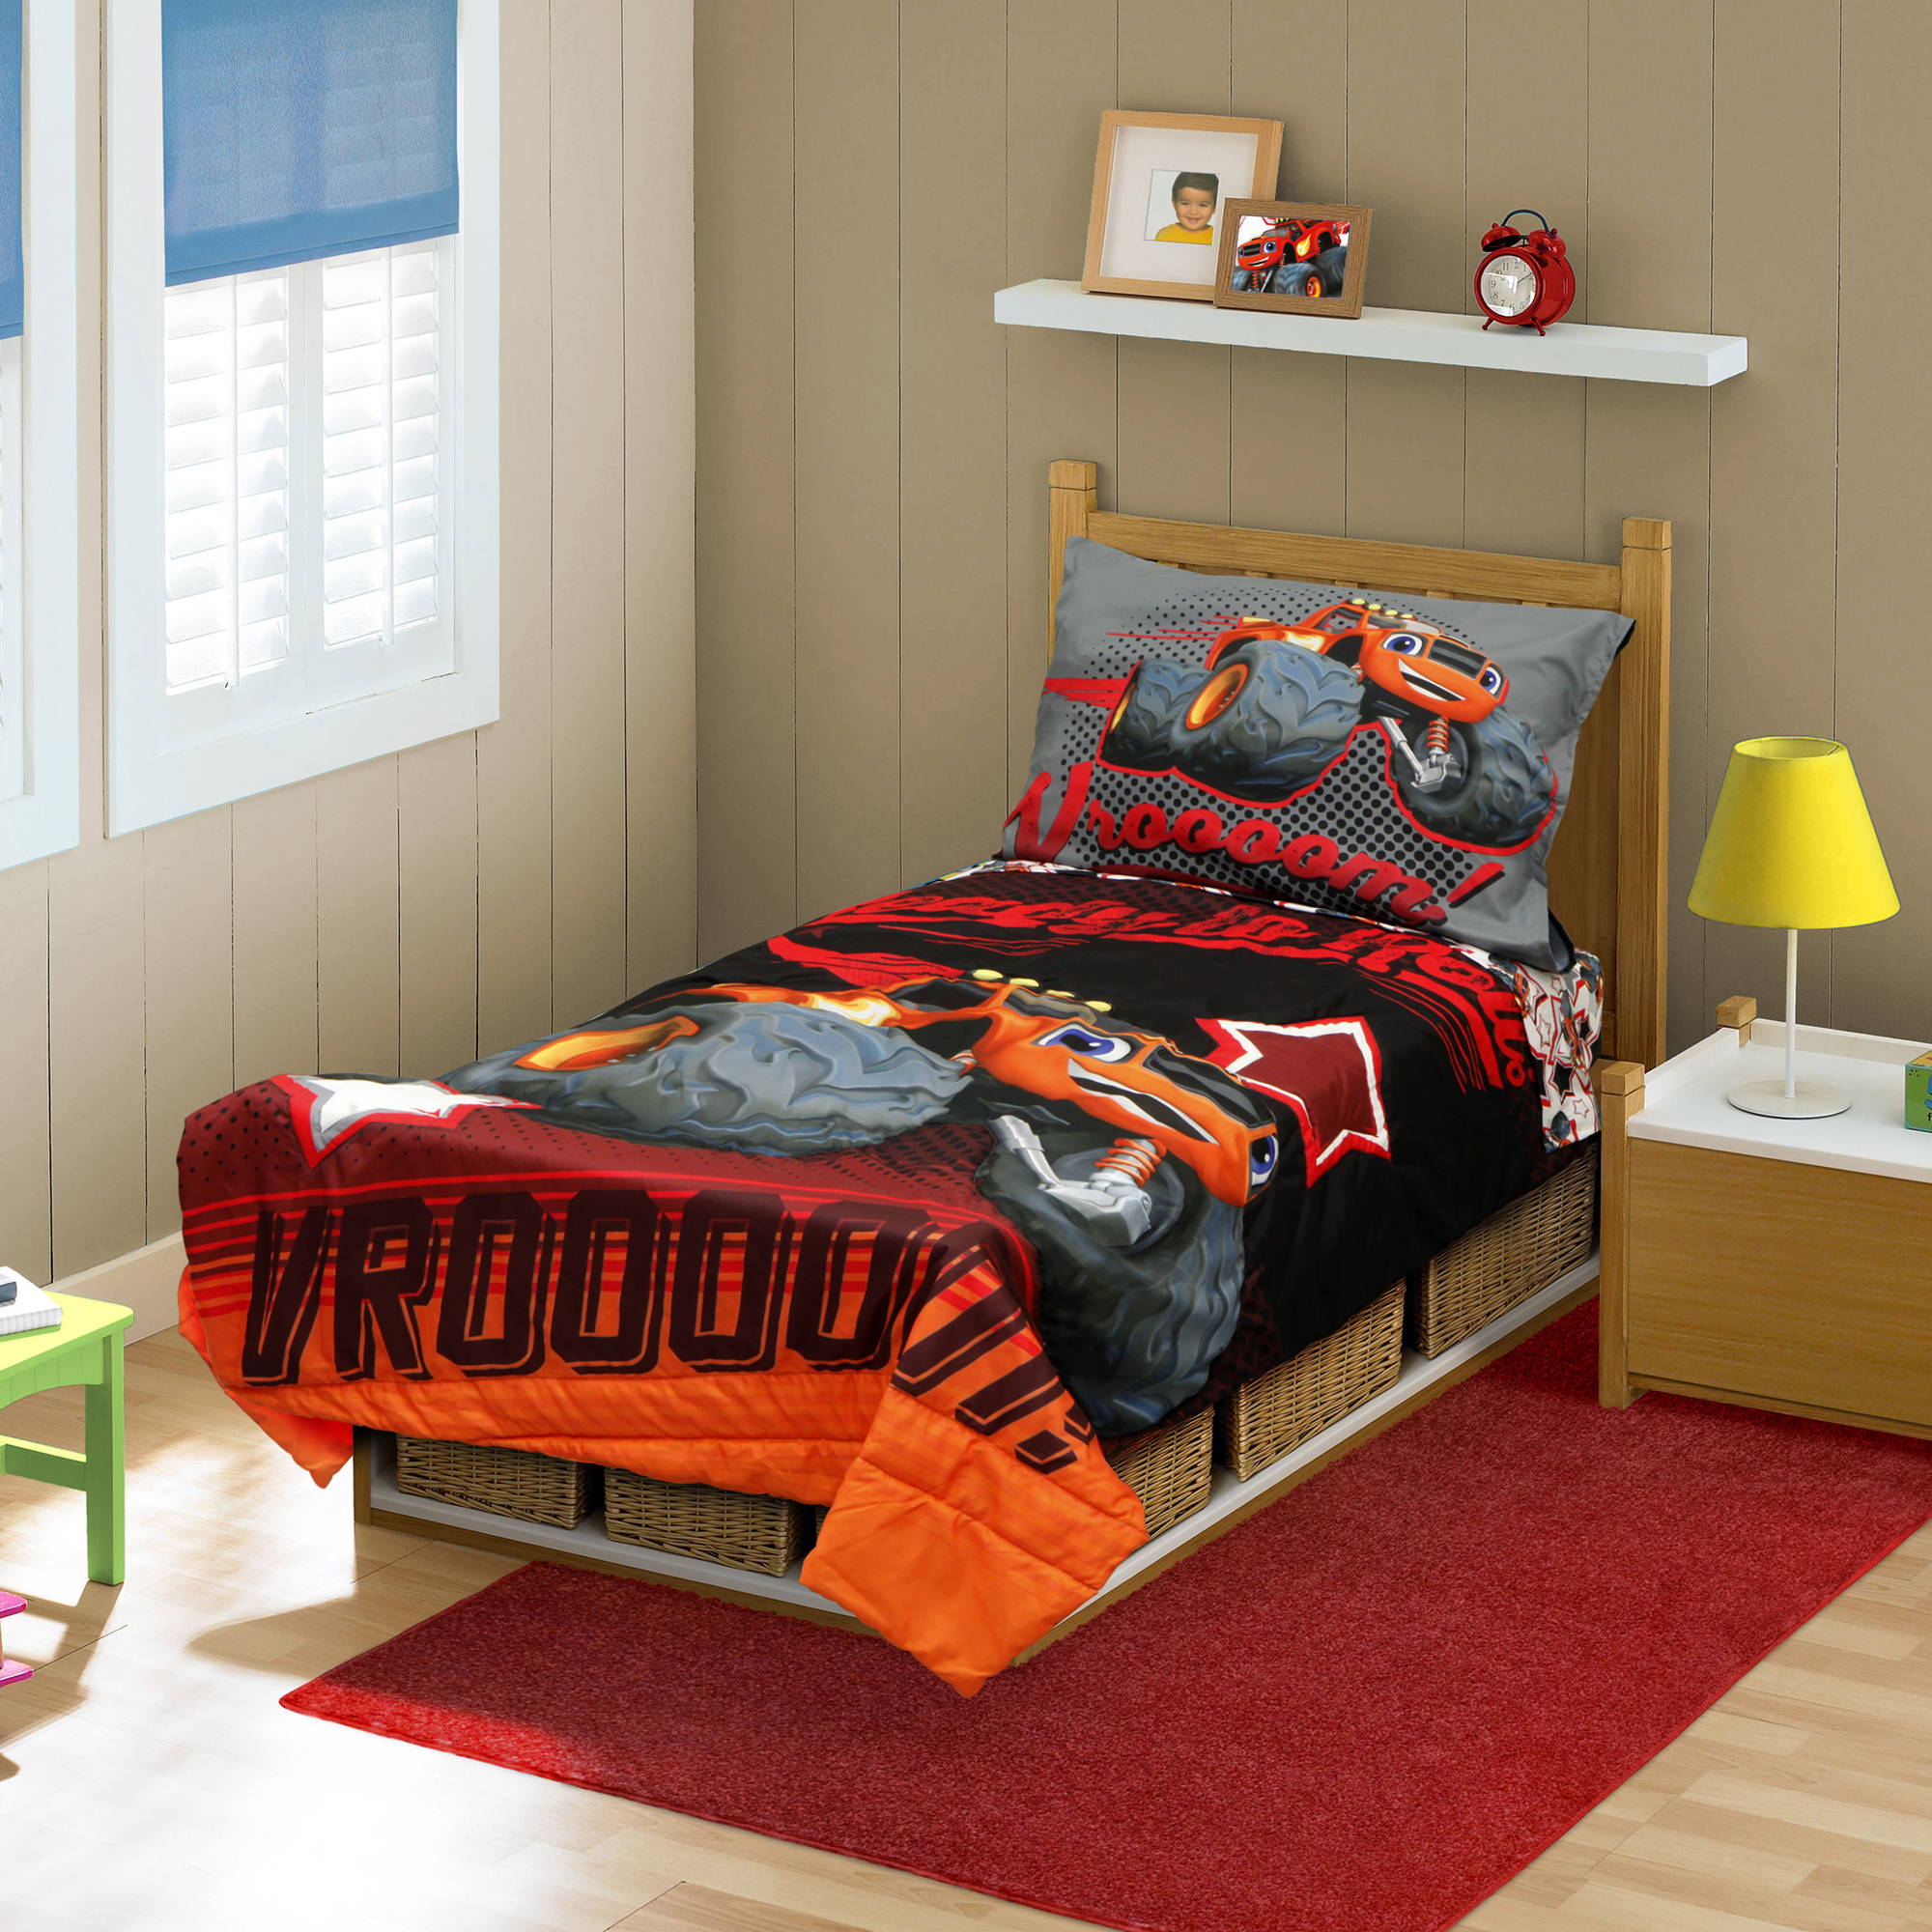 Boys Double Quilt Cover Nickelodeon Teenage Mutant Ninja Turtles 4 Piece Toddler Bedding Set